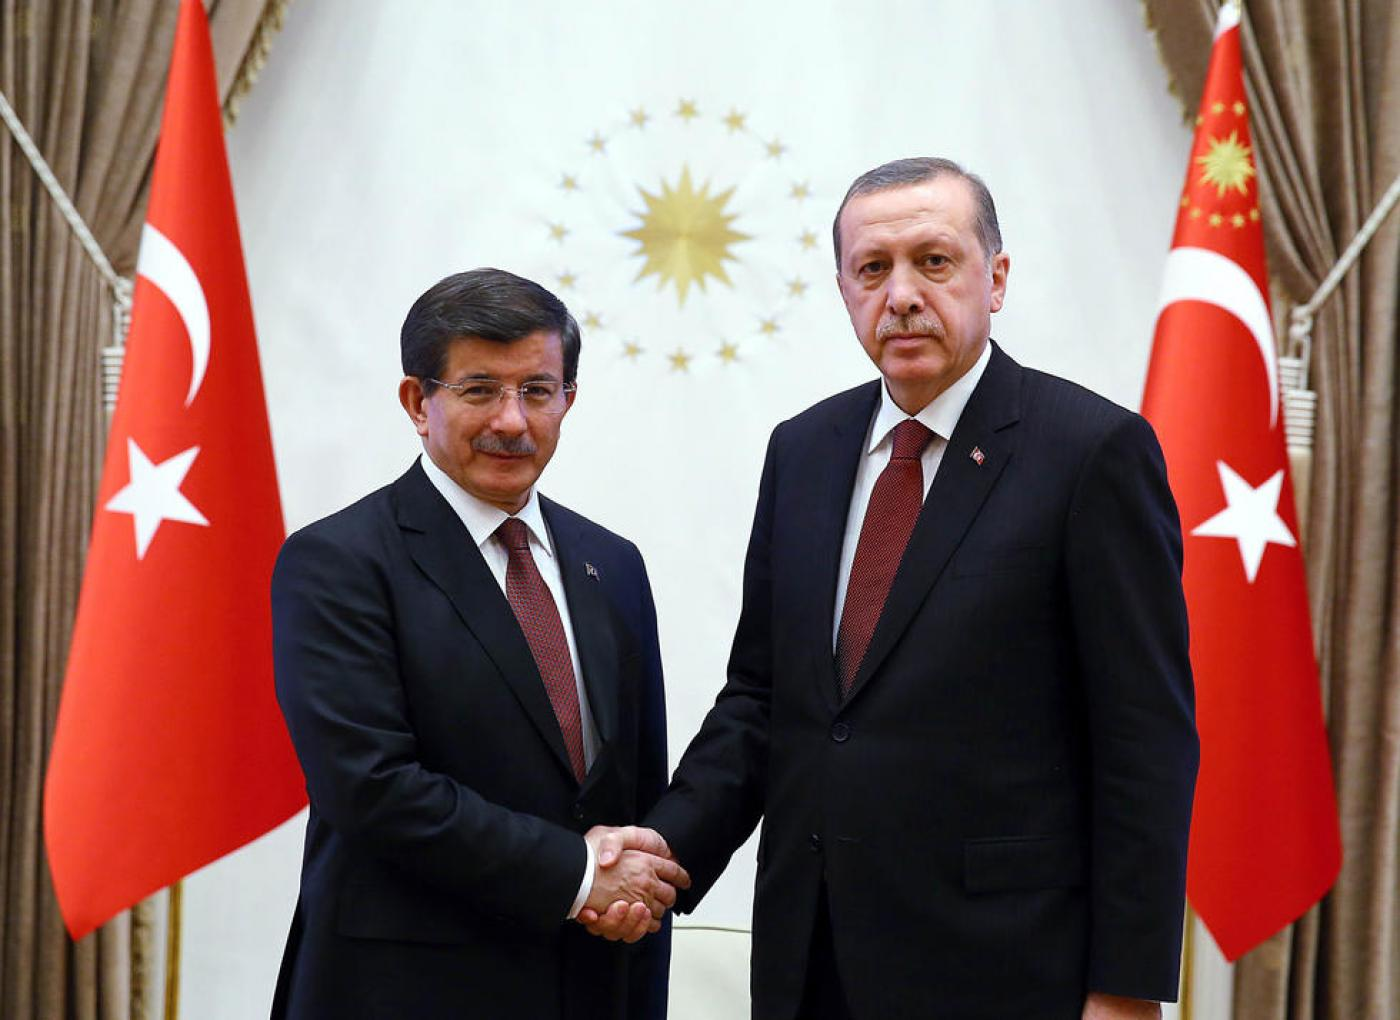 Turkish President Recep Tayyip Erdogan (R) shaking hands with Turkish Prime Minister Ahmet Davutoglu at Presidential Palace in Ankara on 29 January, 2015 (AFP/TURKISH PRESIDENTIAL PRESS OFFICE)